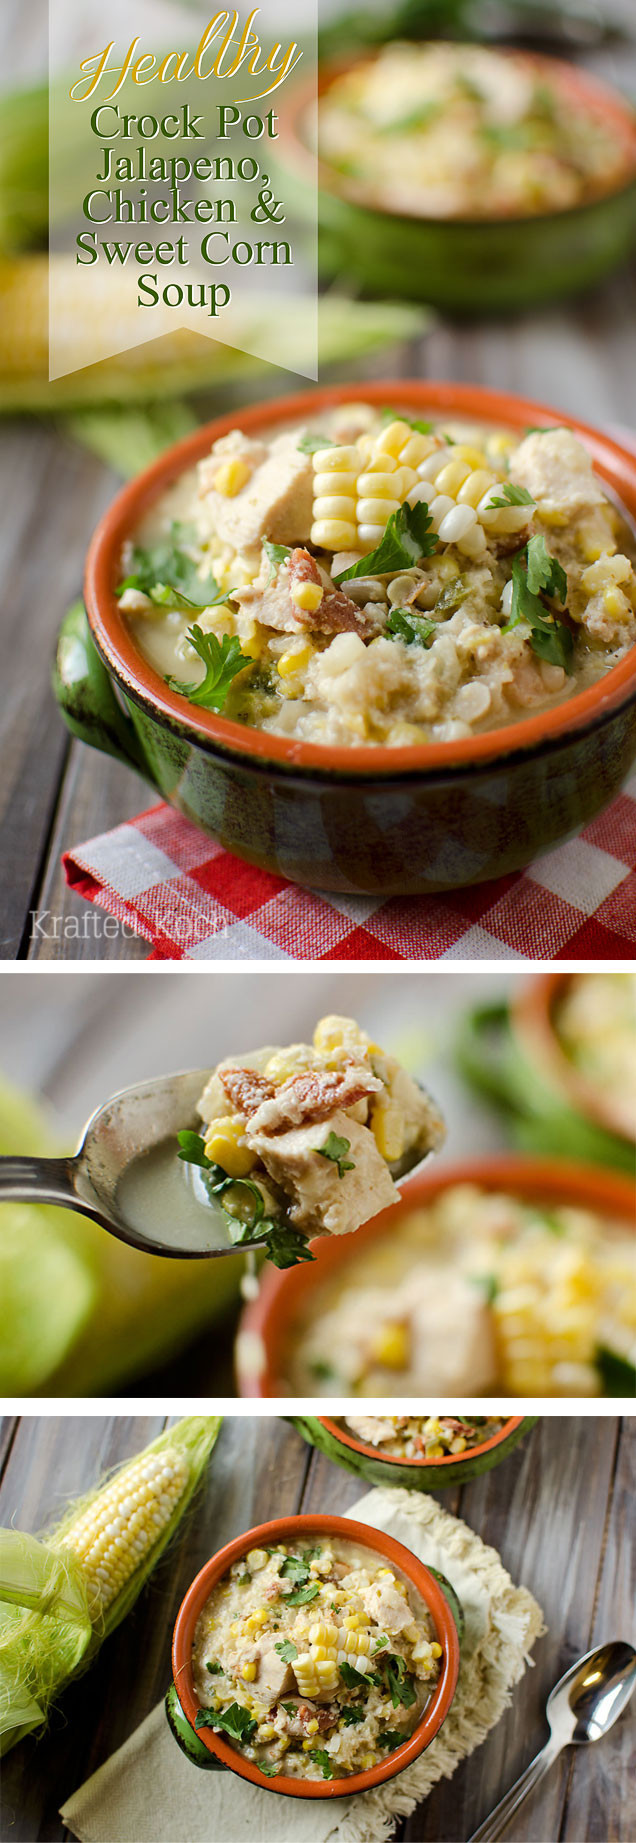 Crock Pot Chicken Soup Recipes Healthy  Healthy Crock Pot Jalapeno Chicken & Sweet Corn Soup